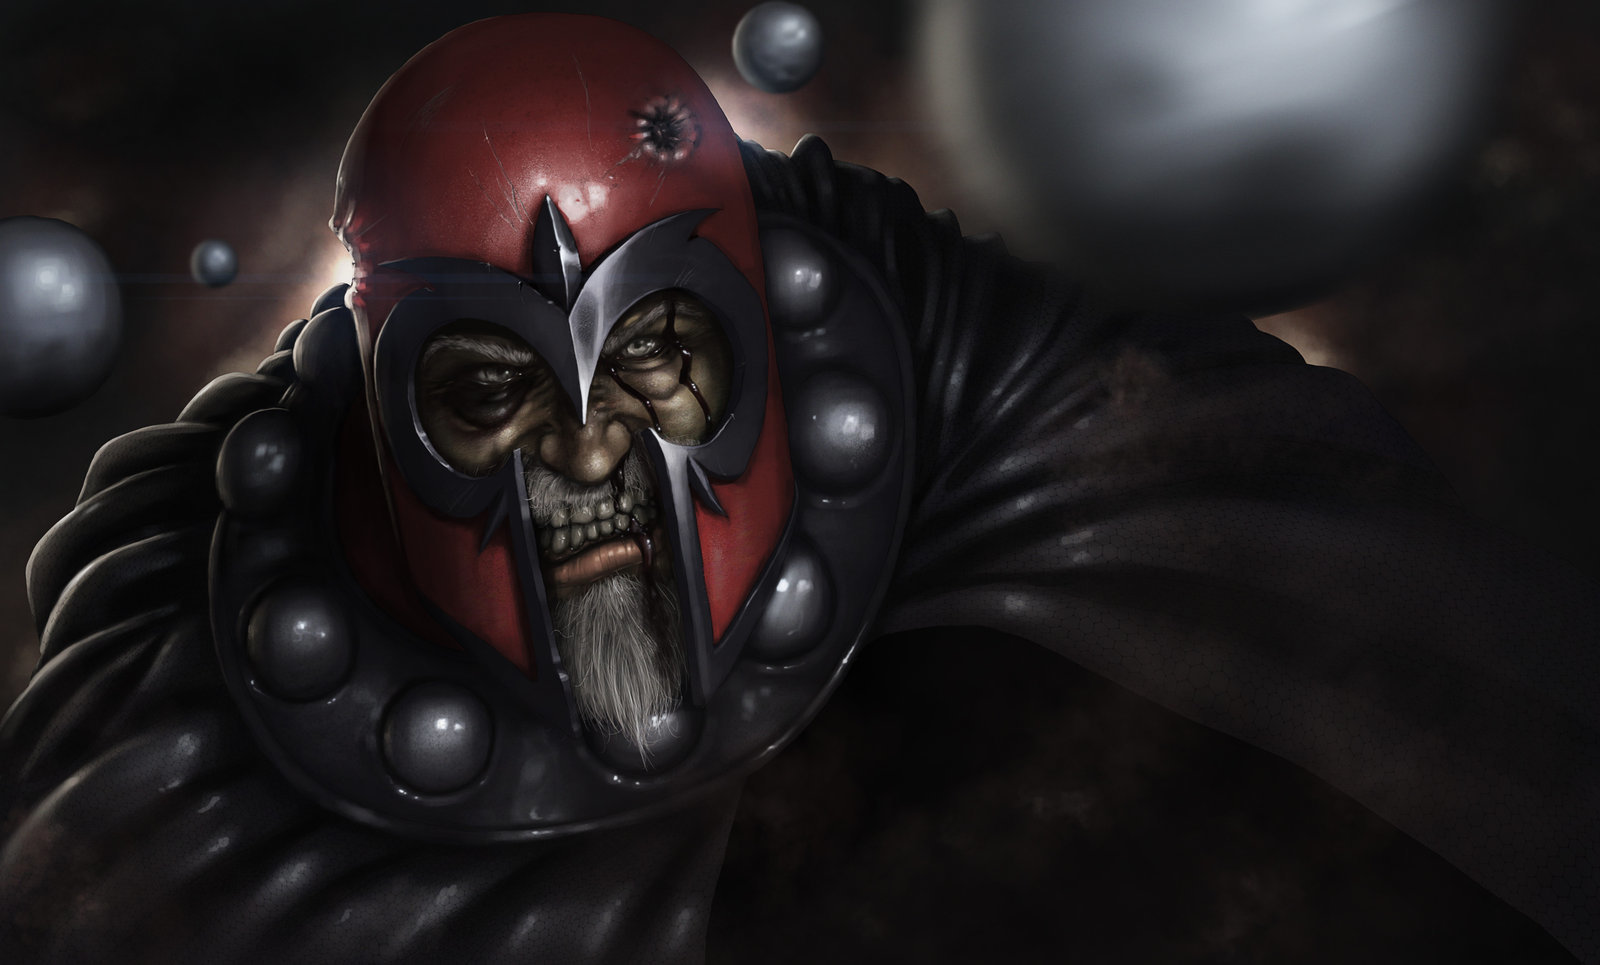 X-Men magneto HD Wallpaper